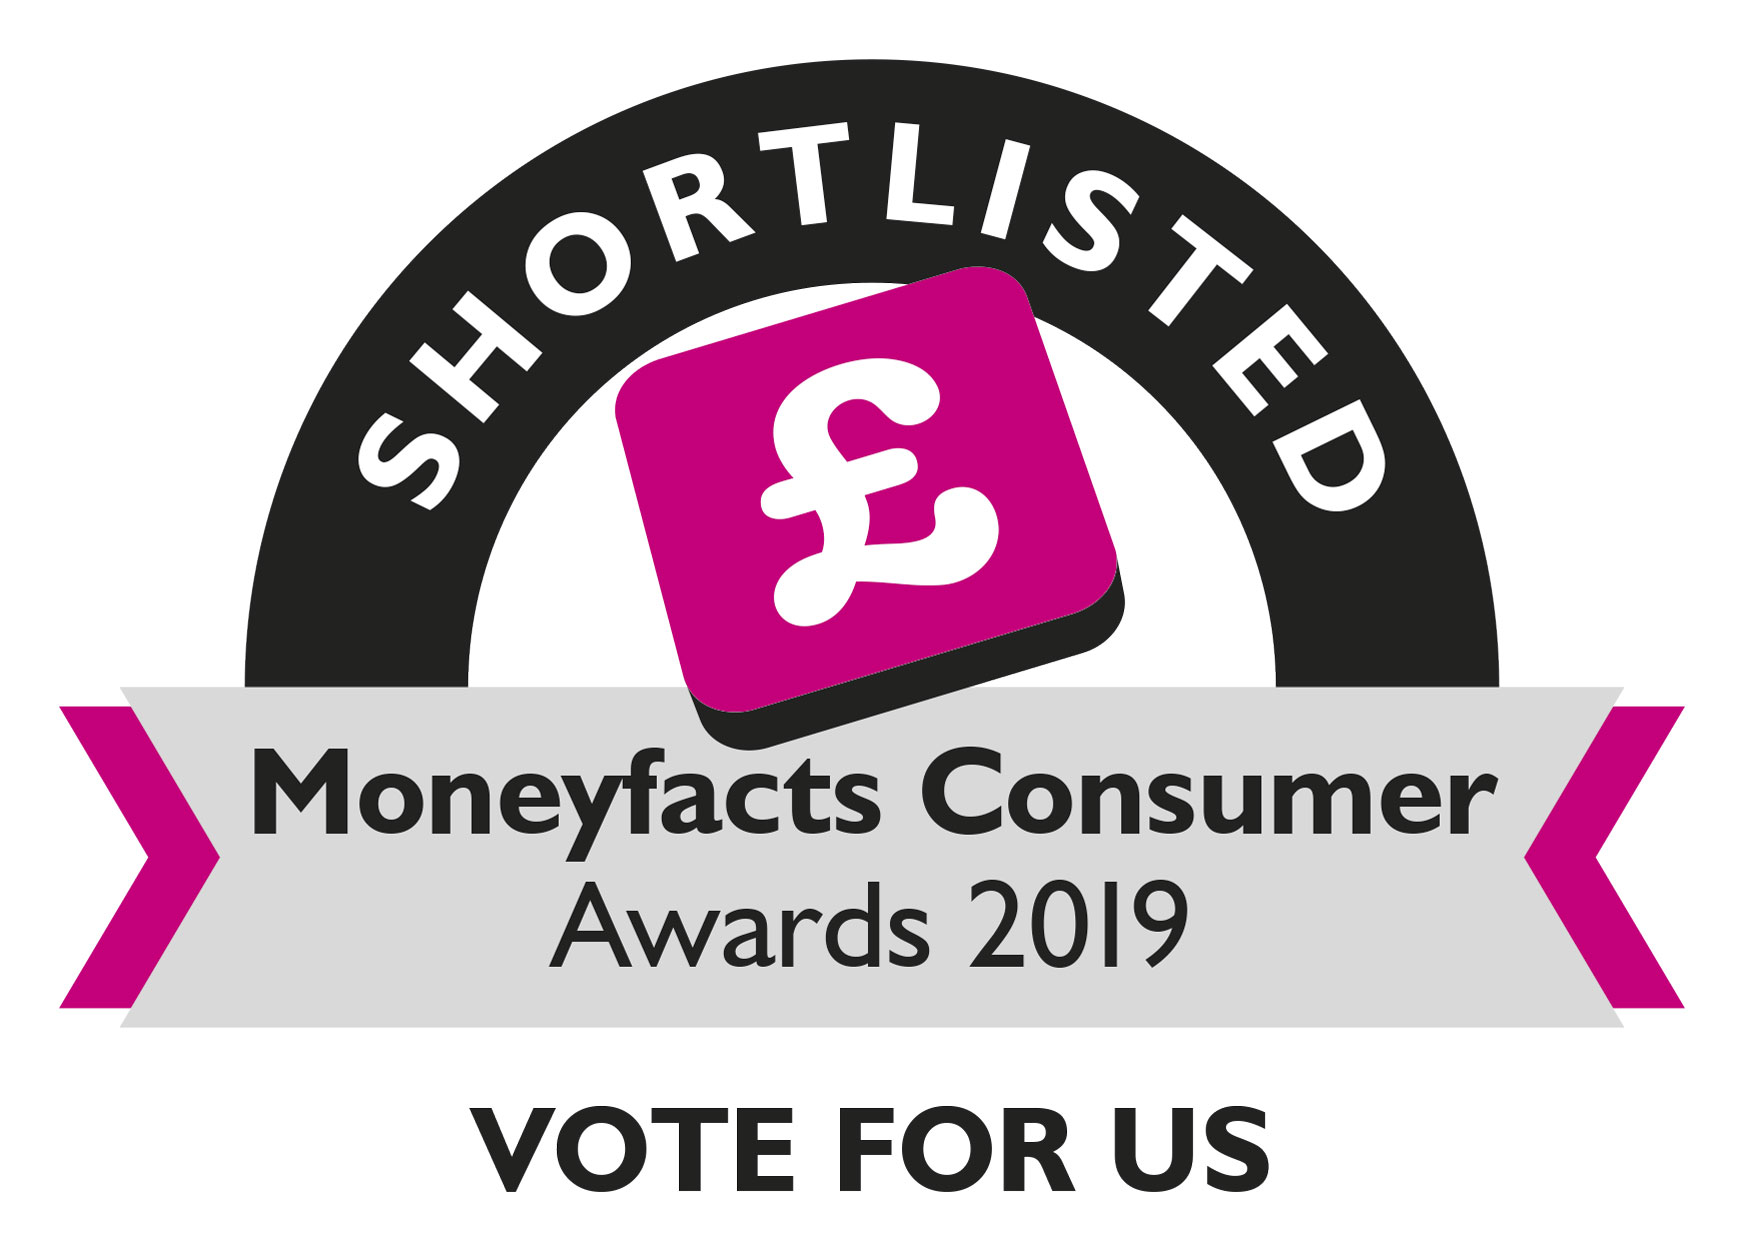 Moneyfacts Consumer Awards 2019 image